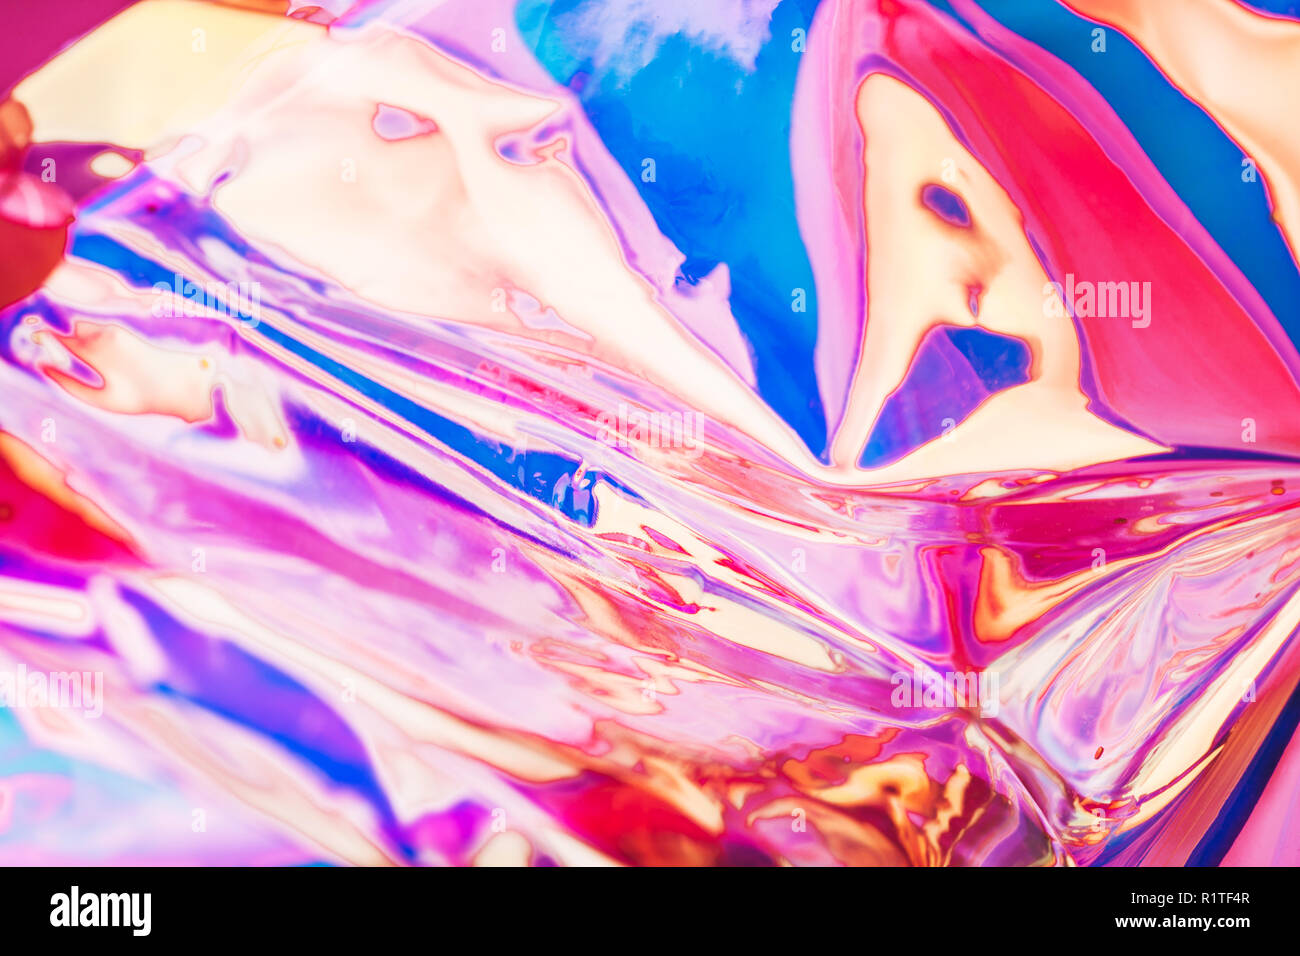 Bright holographic foil background. Multicolored and pastel trendy backdrop. - Stock Image